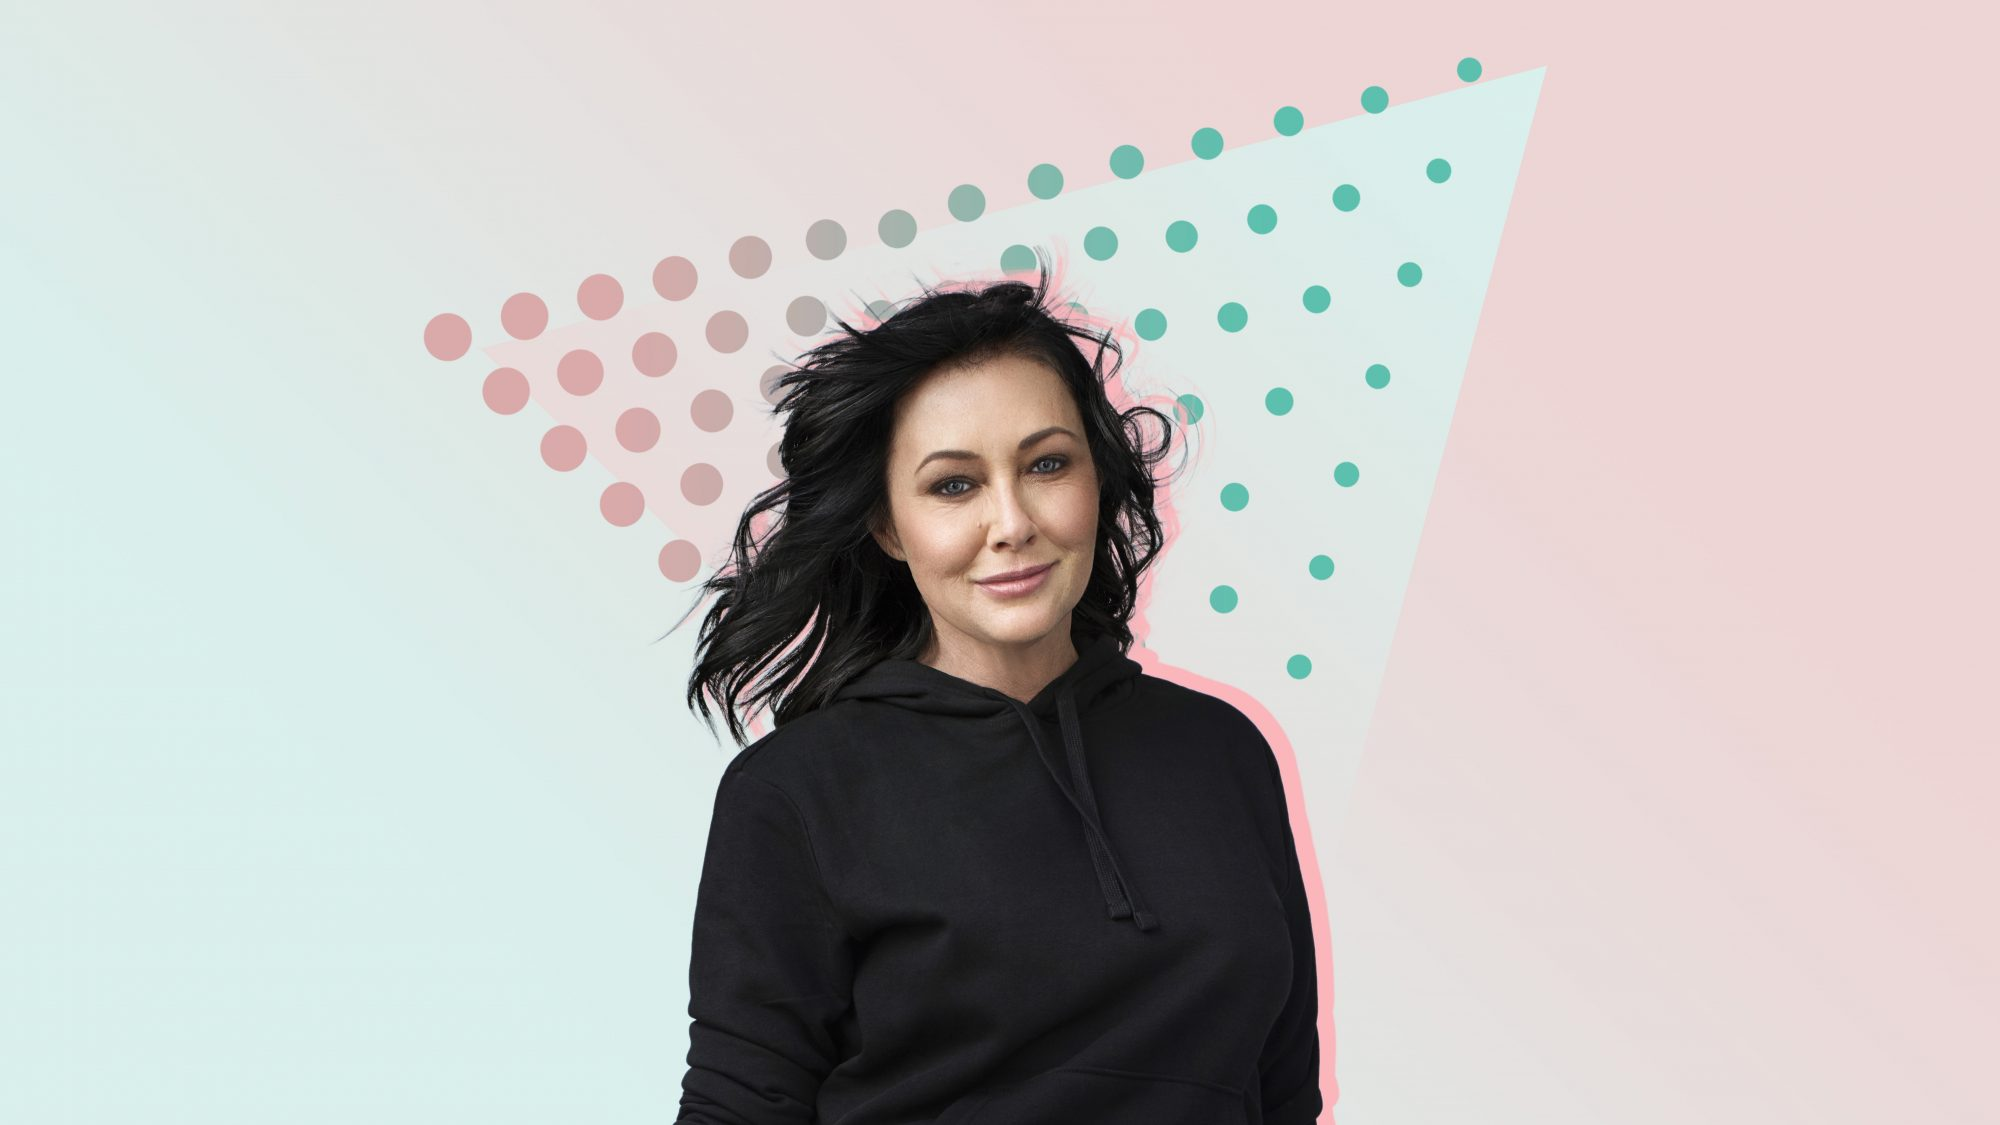 BH90210's Shannen Doherty Opens Up About Loving Herself After Breast Cancer